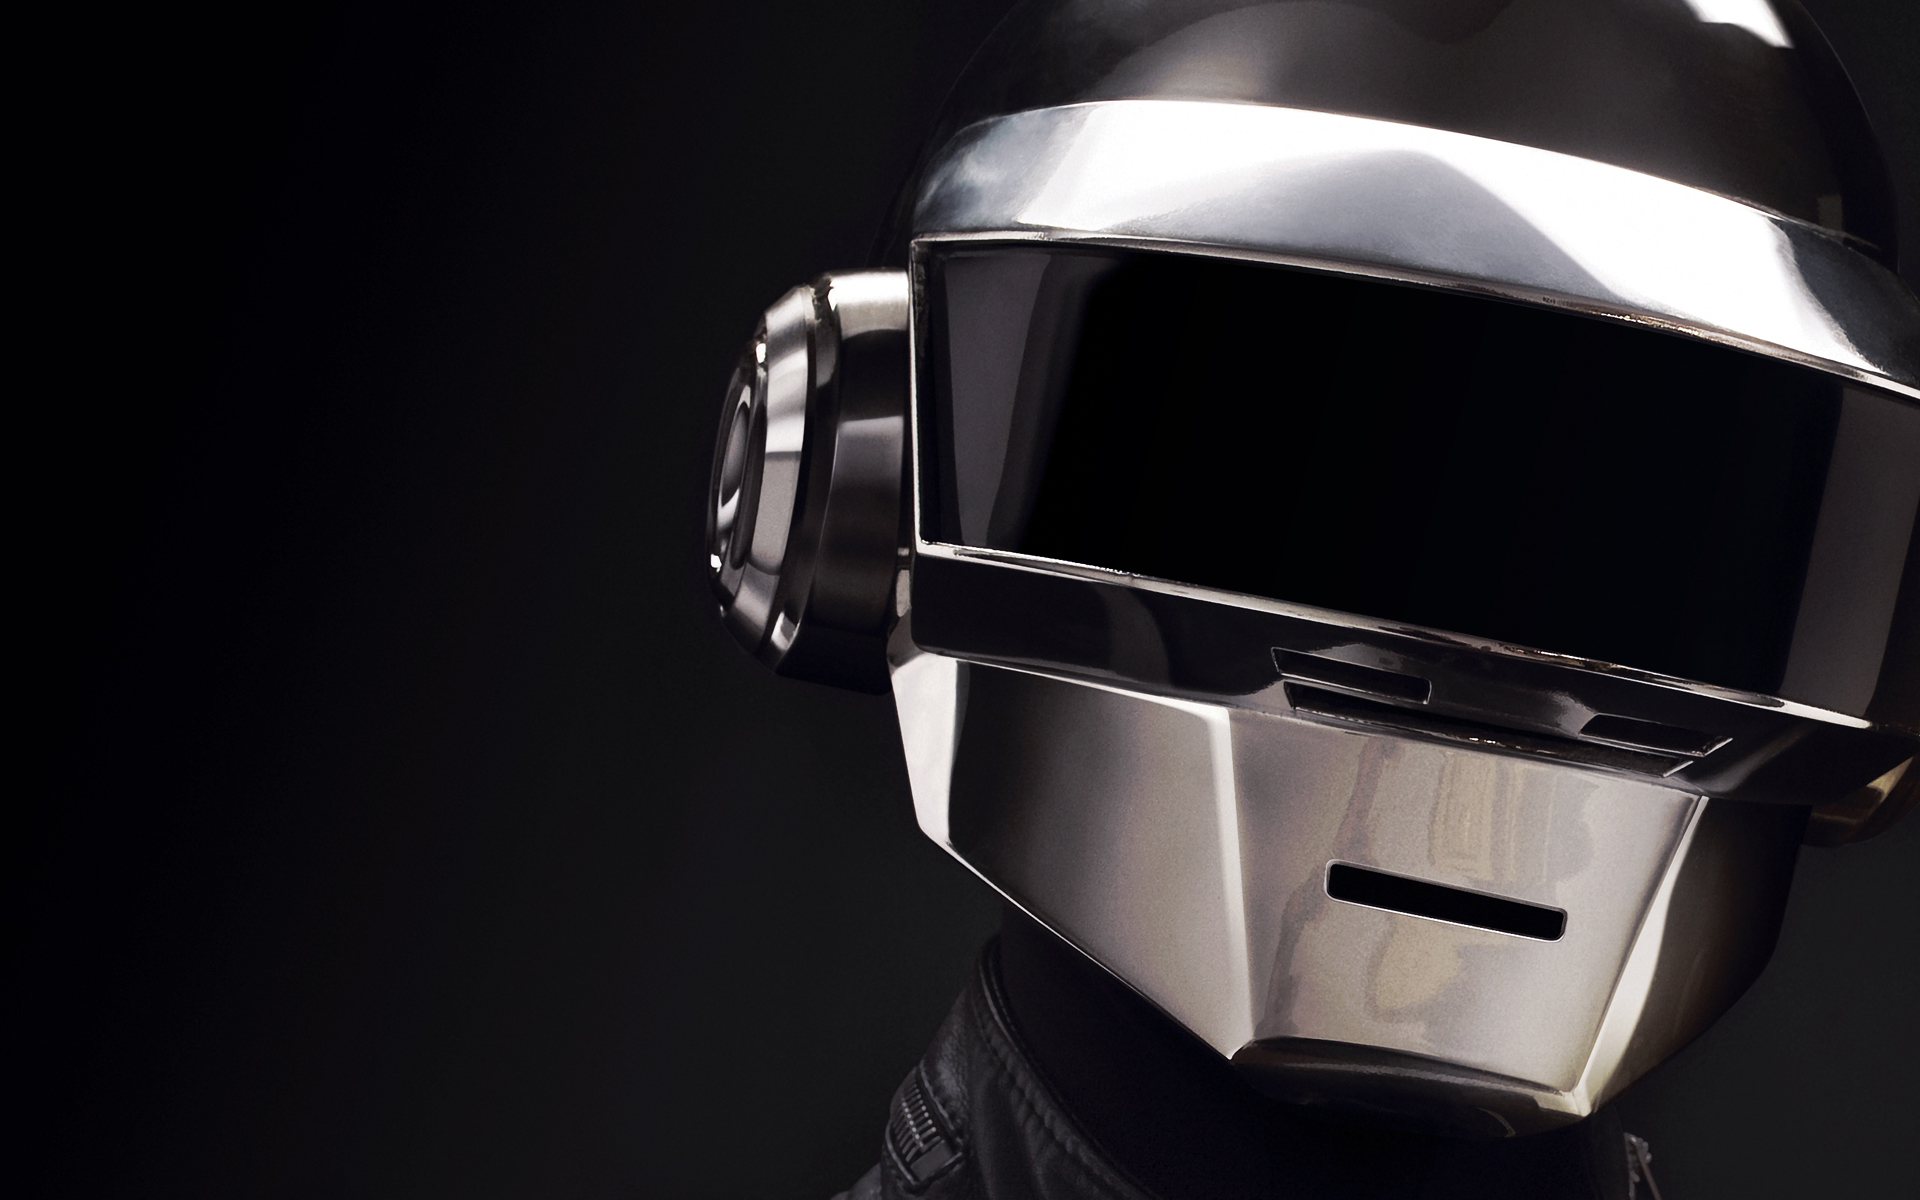 Your Daft Punk Wallpapers Wanted   The Daft Club - Daft ...